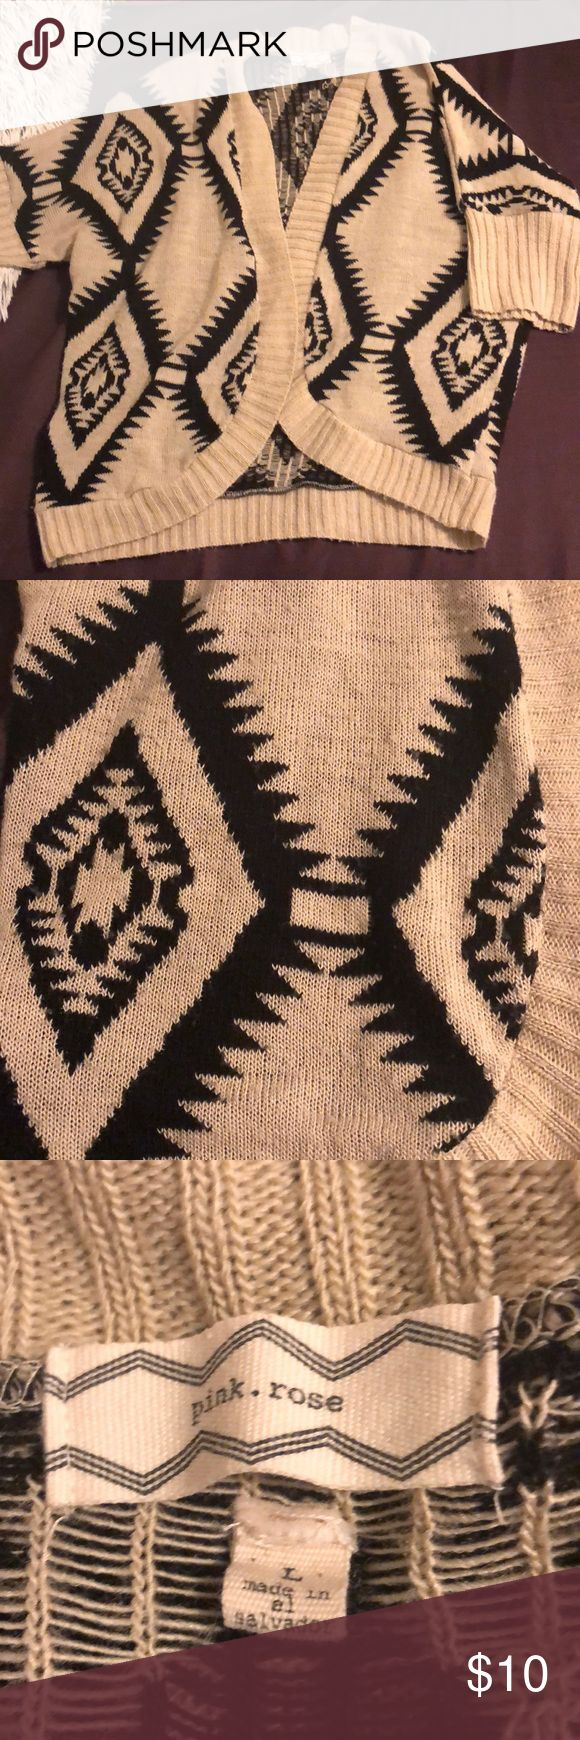 Tan and black Aztec pattern sweater Short sleeved sweater cardigan with Aztec print. Pink Rose Sweaters Cardigans